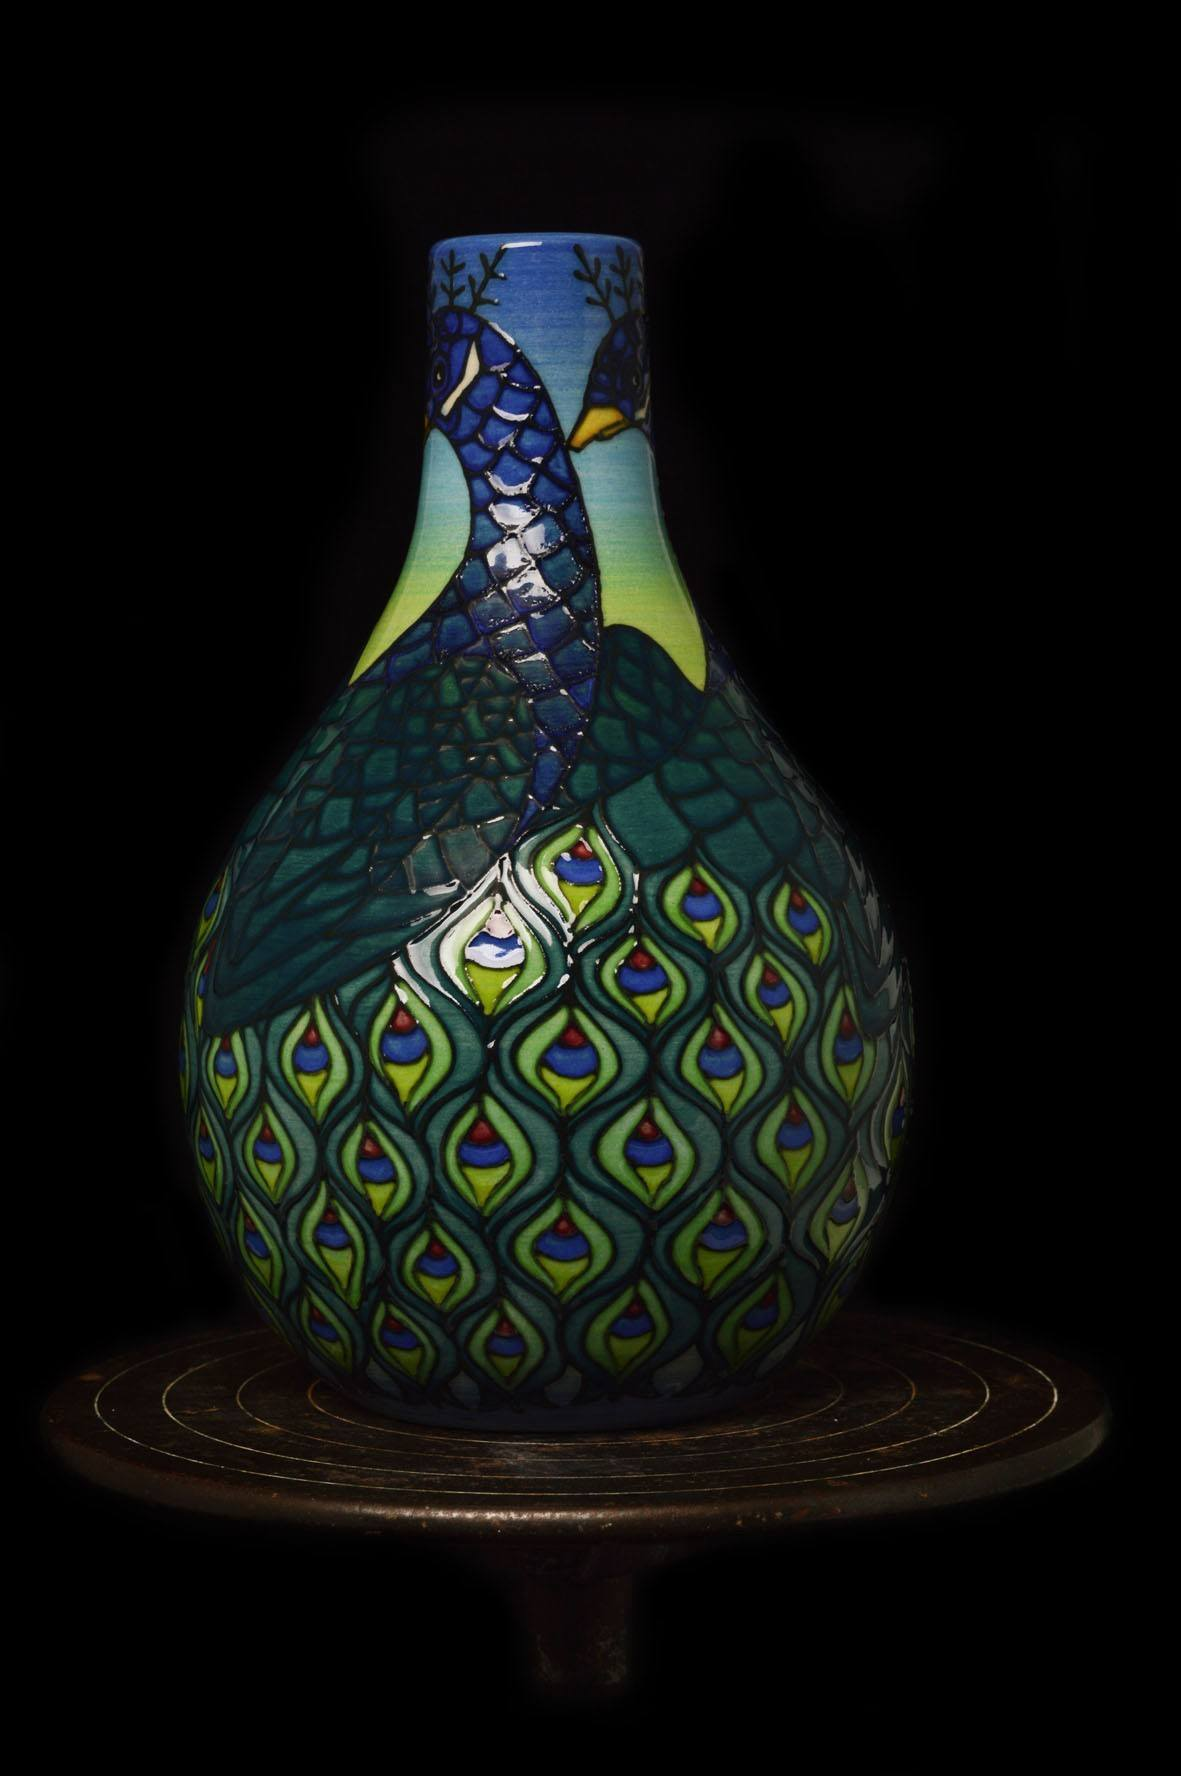 1417542324peacock-sf-bottle-2.jpg